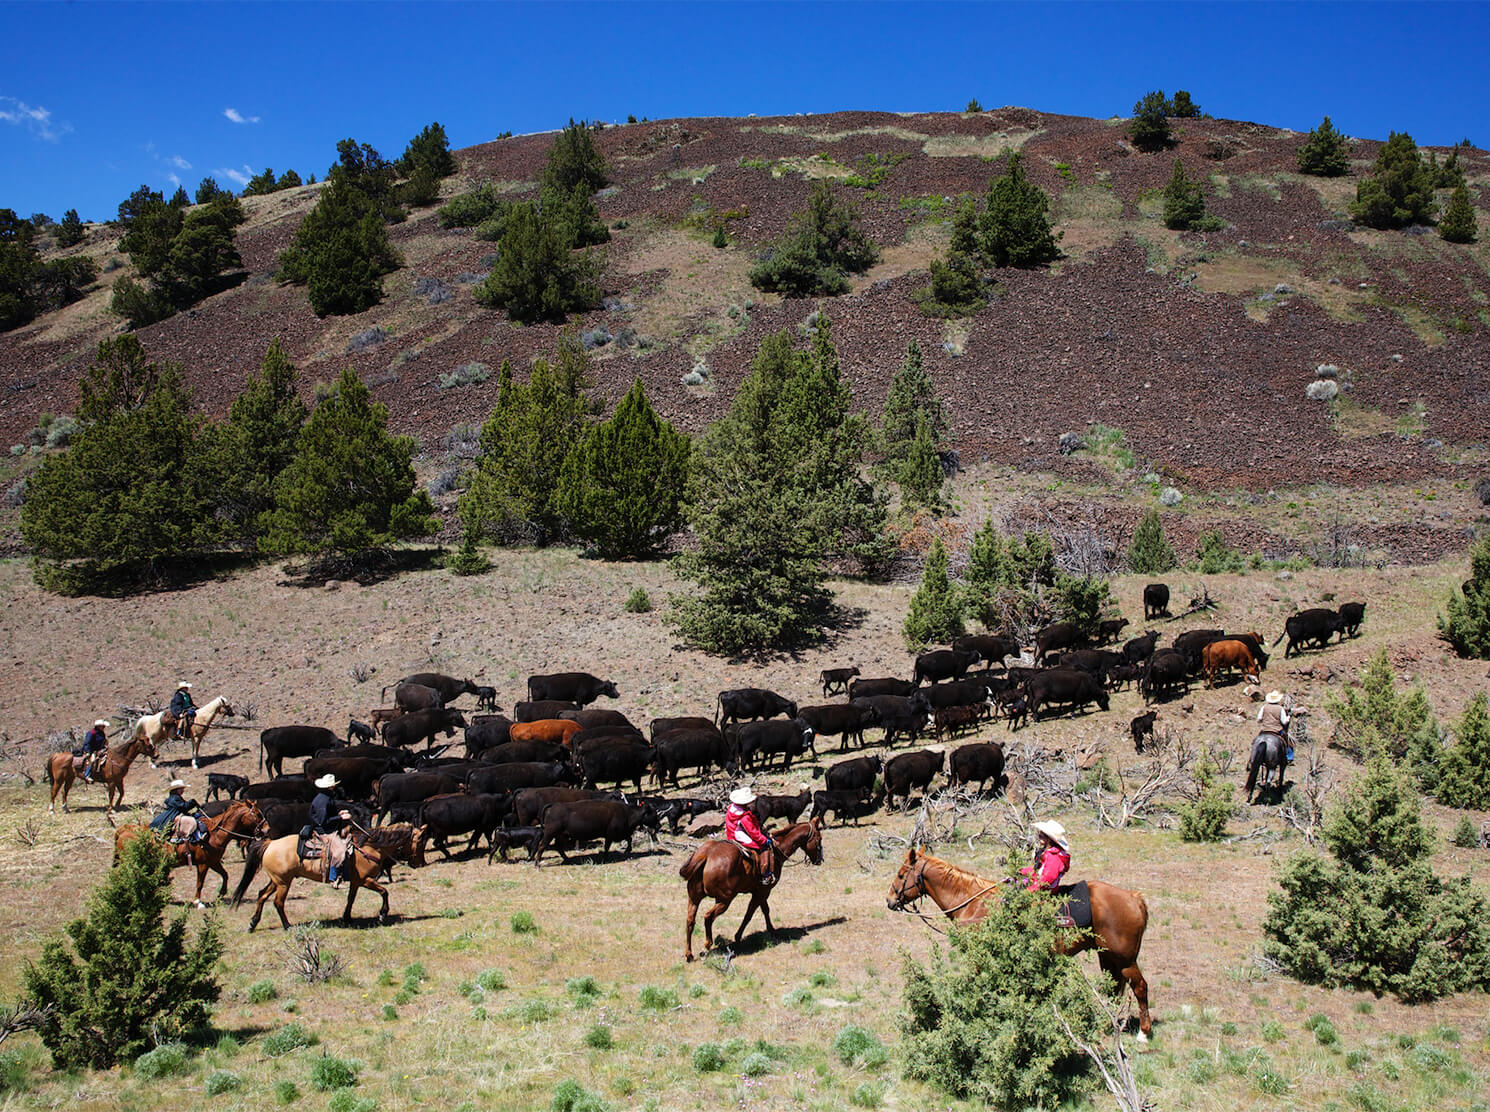 Cowboys on a cattle drive